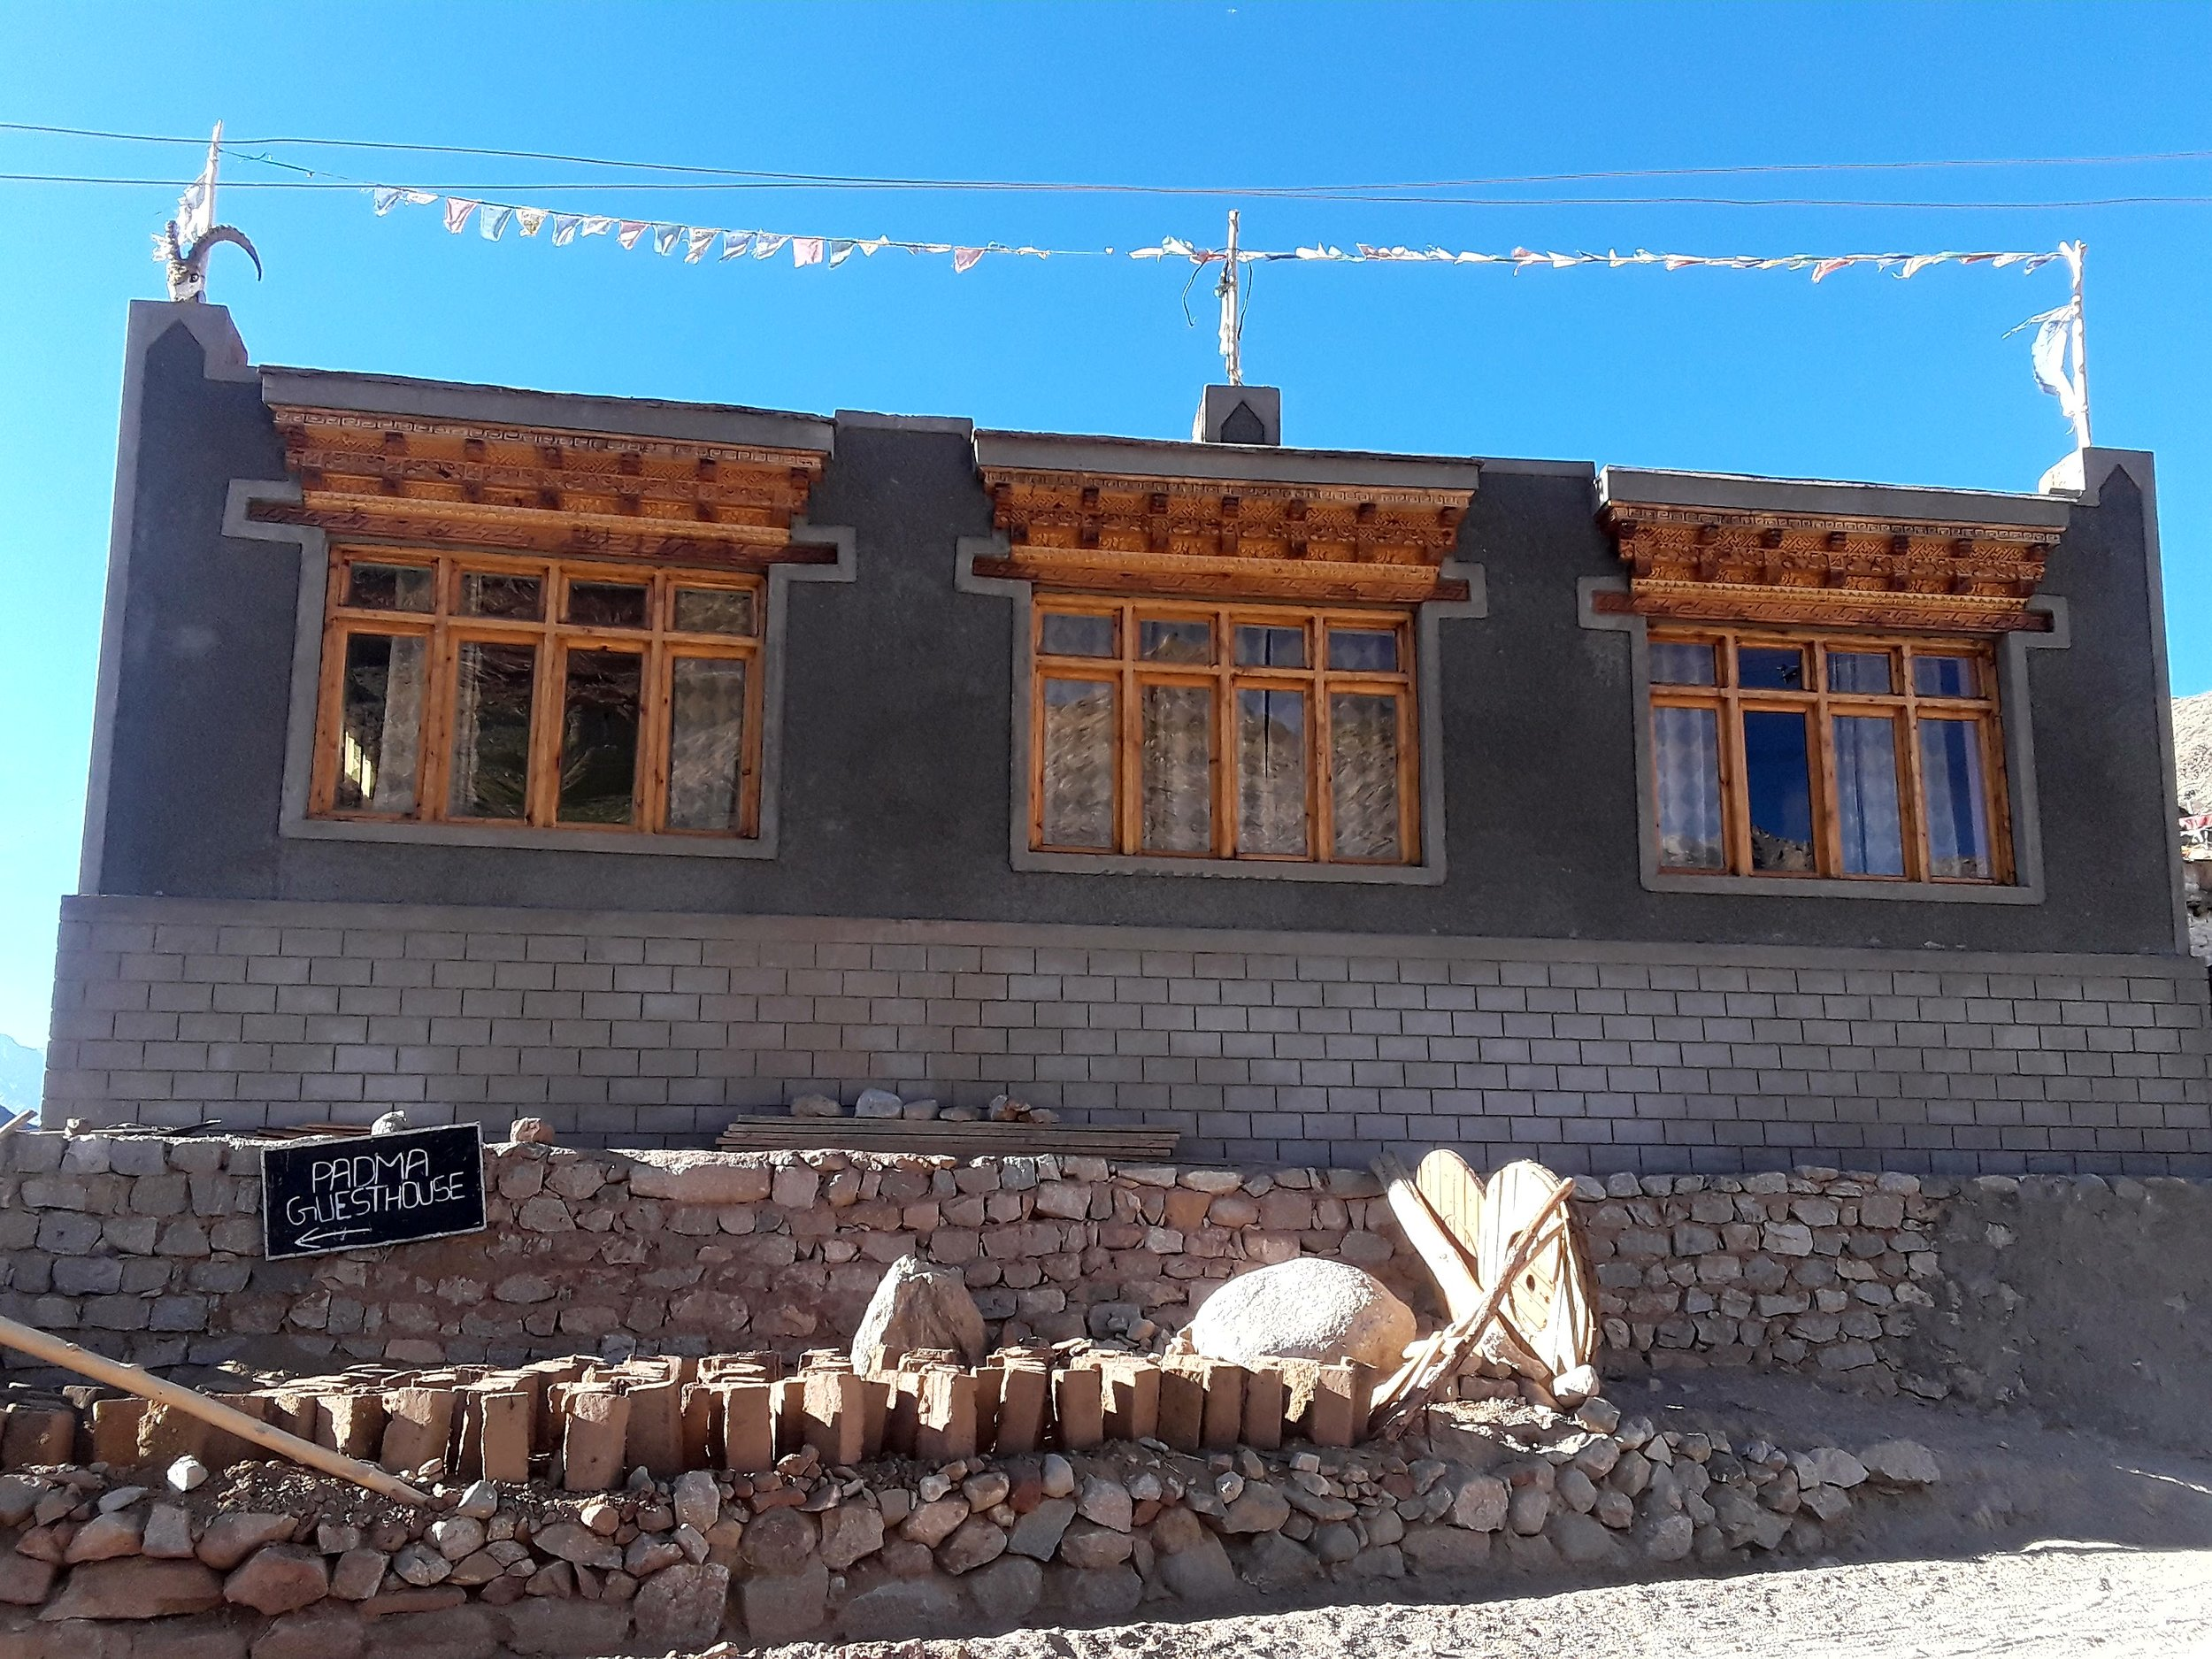 Construction of future guesthouse.